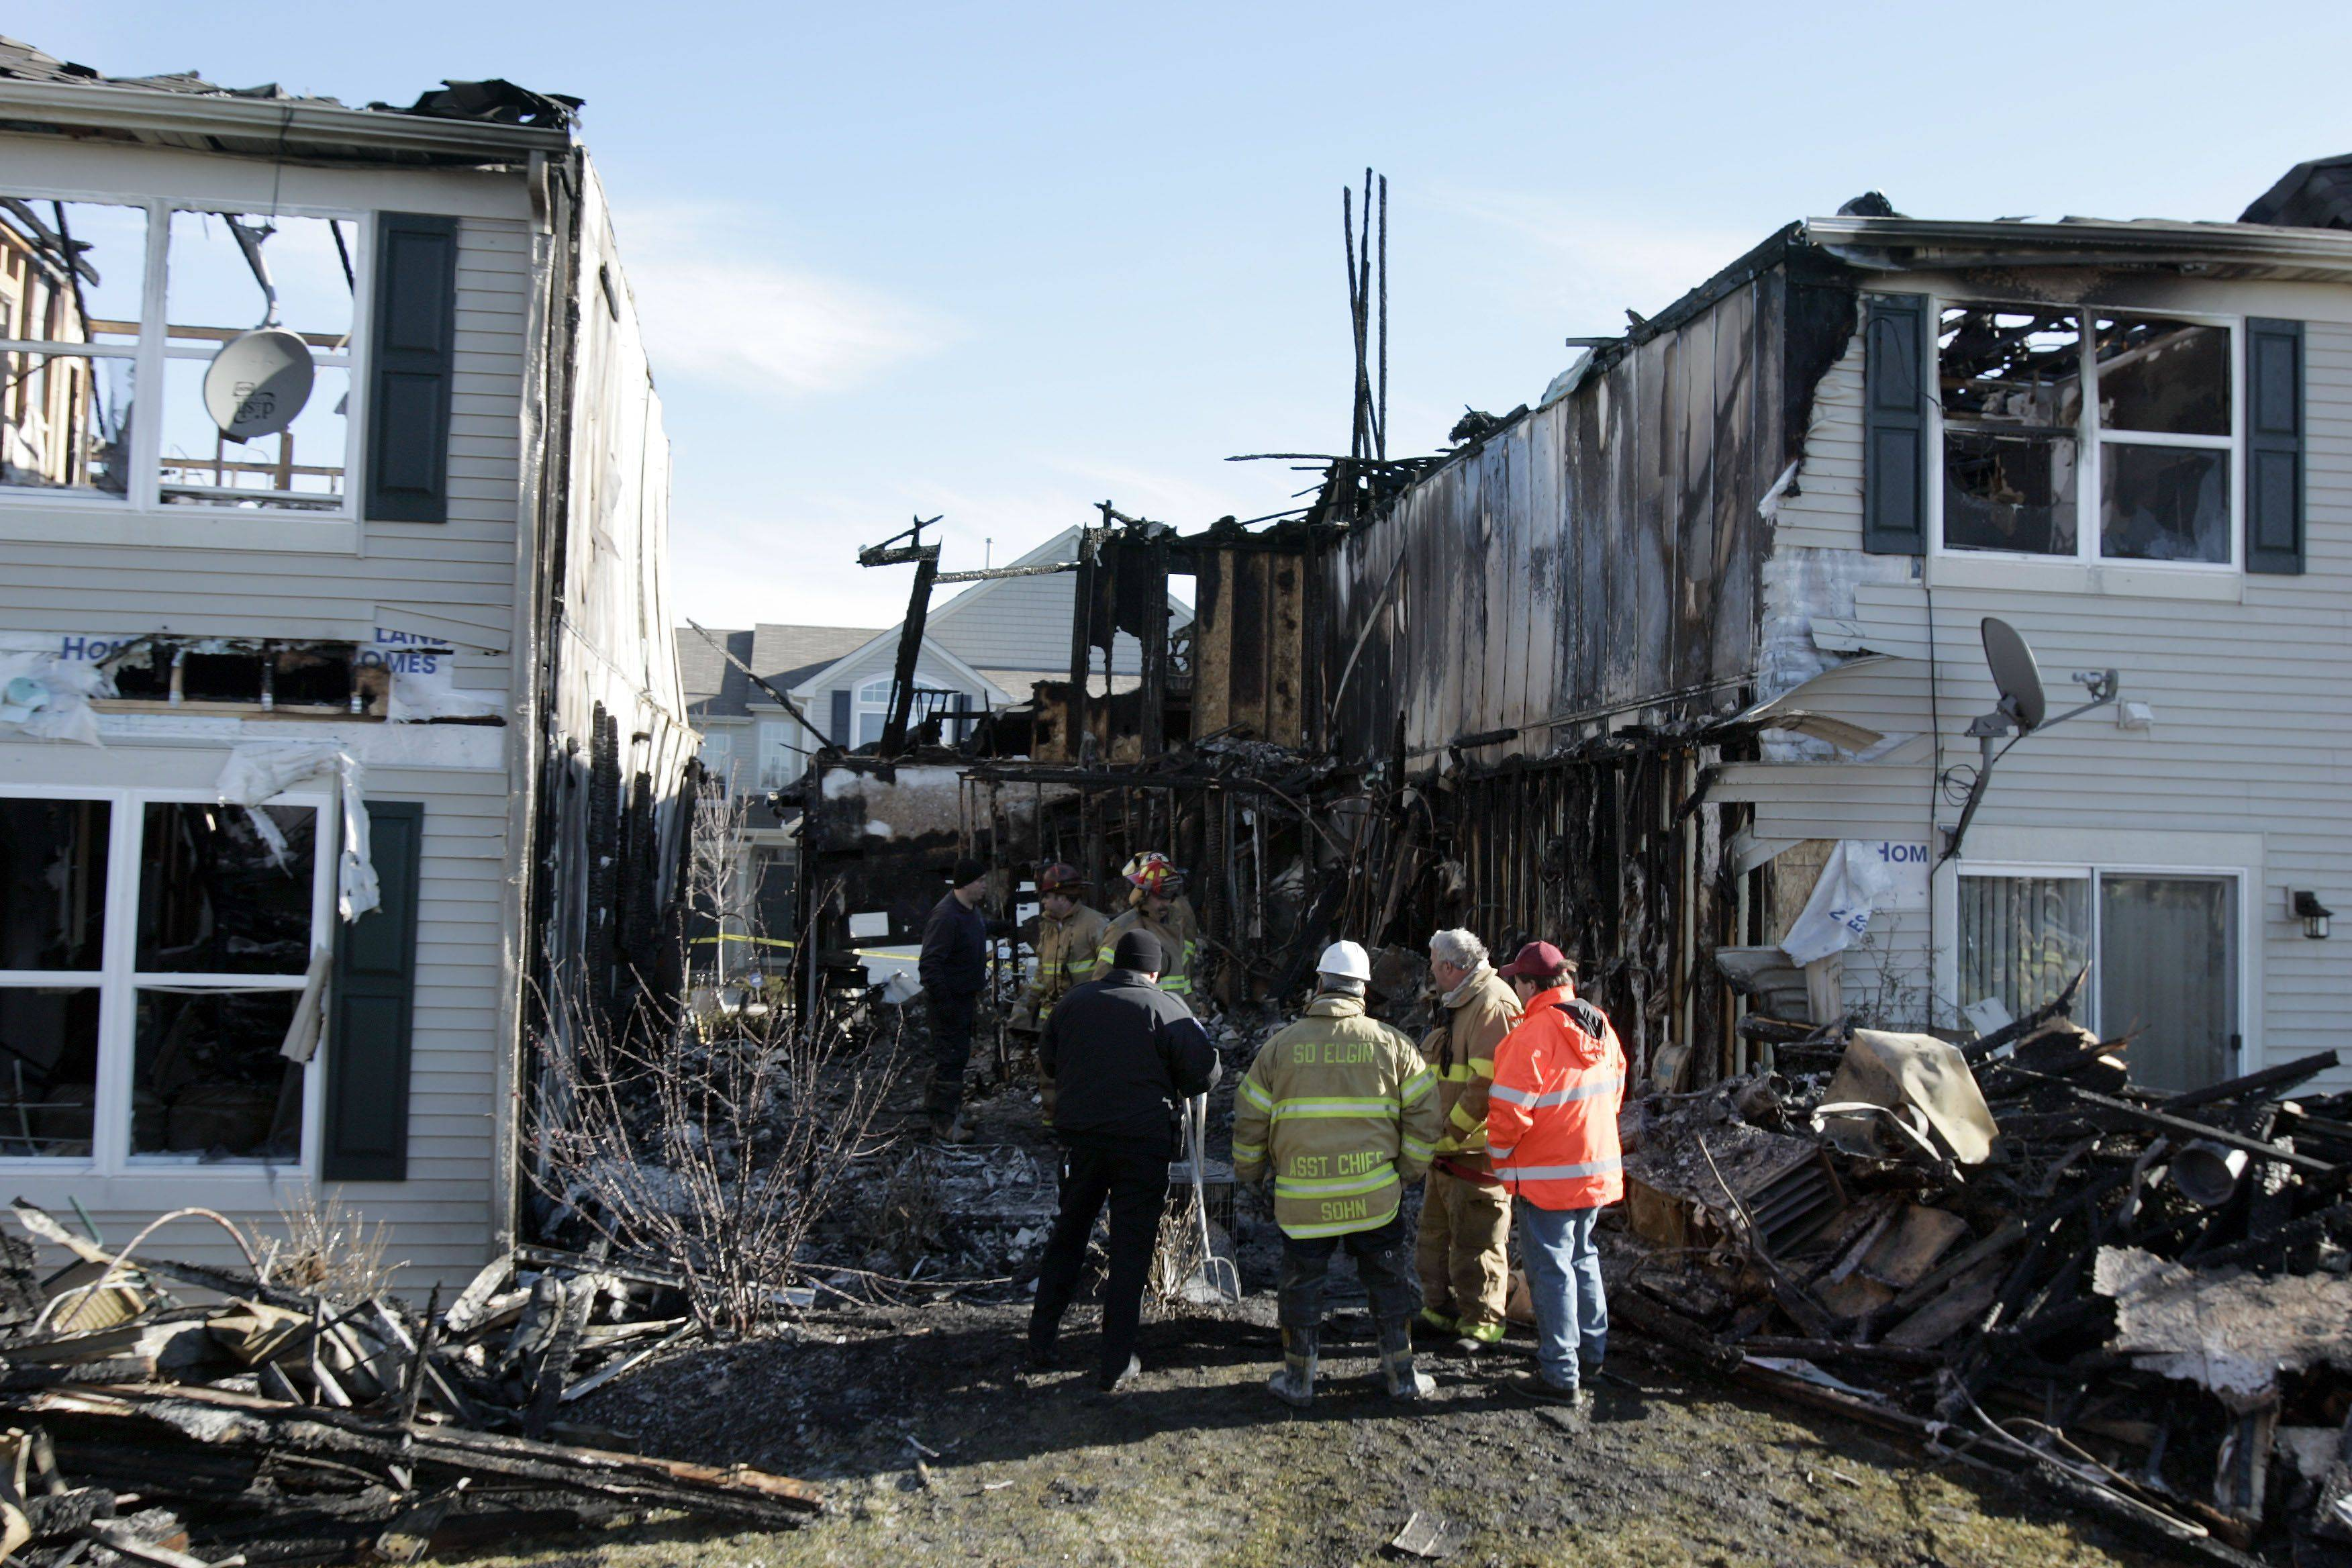 Fire personnel look over what's left of the townhouse building in the 500 block of Telluride in Gilberts four years ago. In addition to killing his girlfriend, prosecutors say, Frank Hill also torched her home.